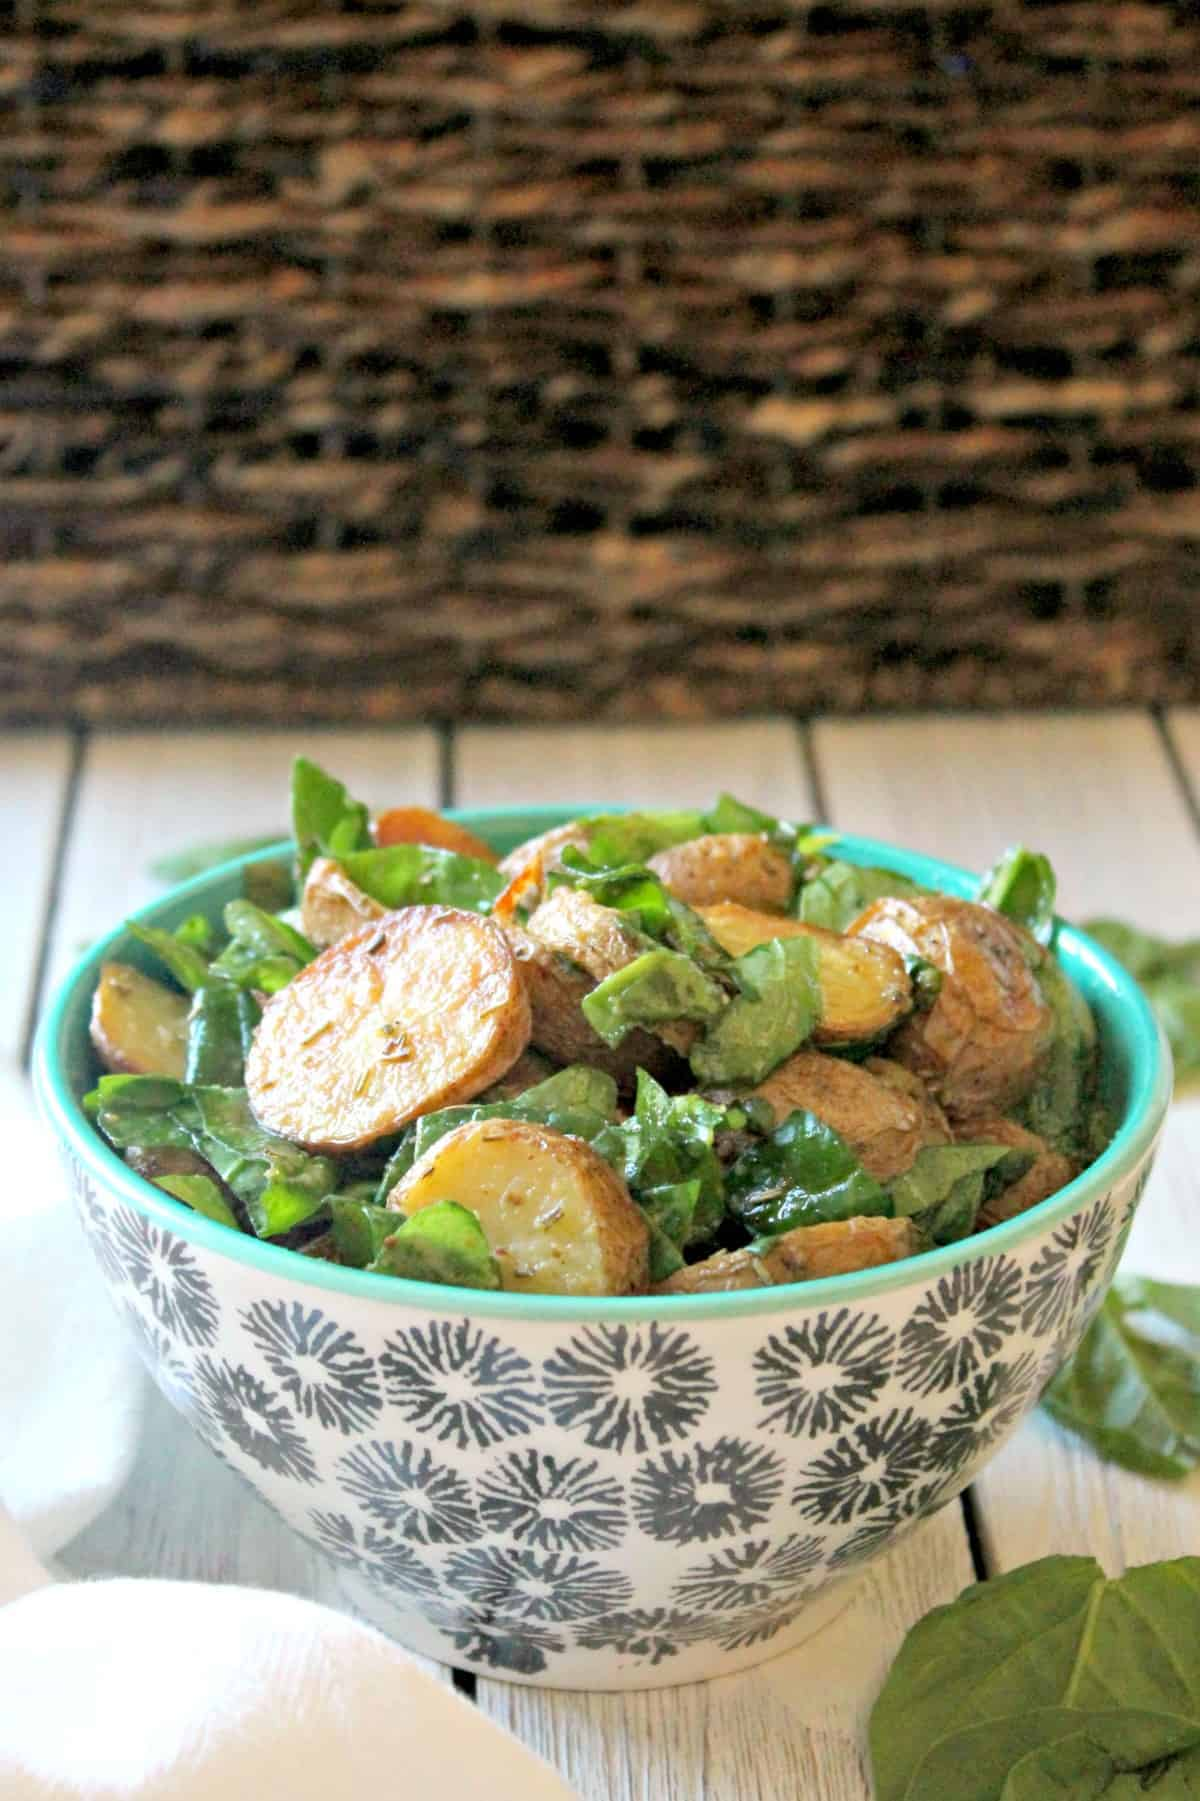 Roasted Potato & Spinach Salad! No mayo here, just a bright and tangy vinaigrette that makes this simple potato salad equally scrumptious. Served warm or at room temperature, it's a versatile, crowd-pleasing side dish you'll make again and again.